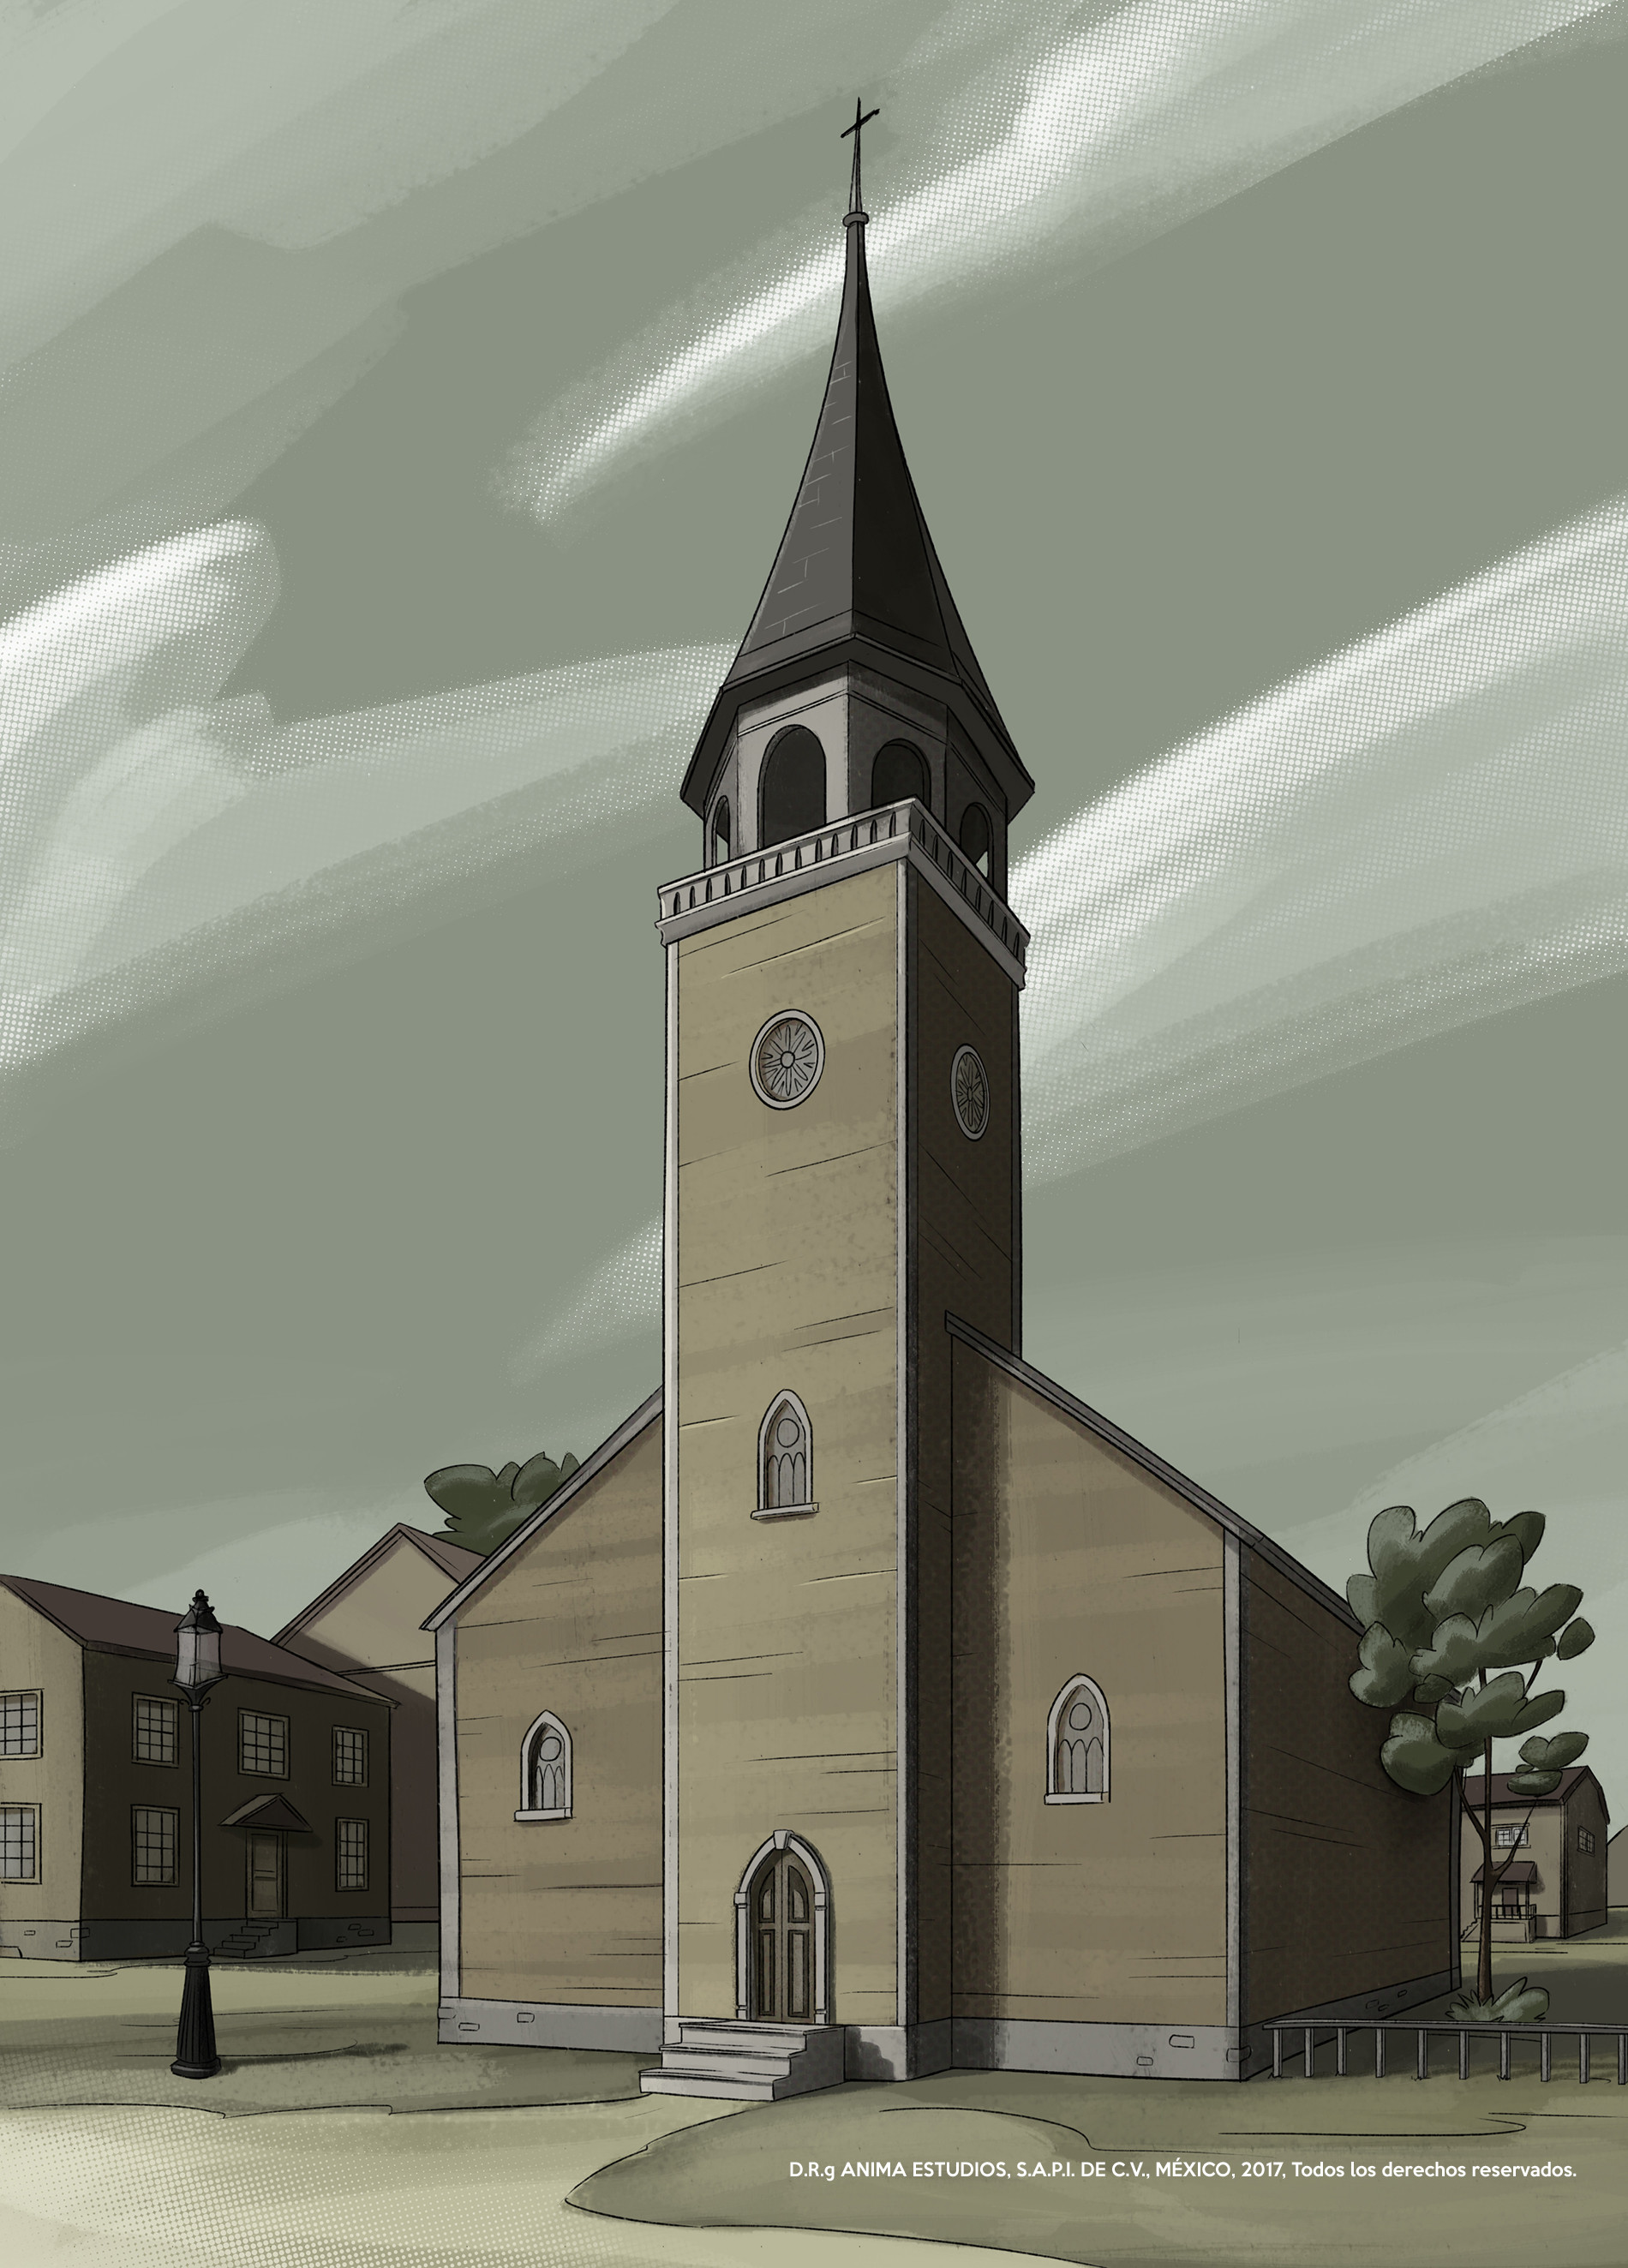 Concept art for the church.